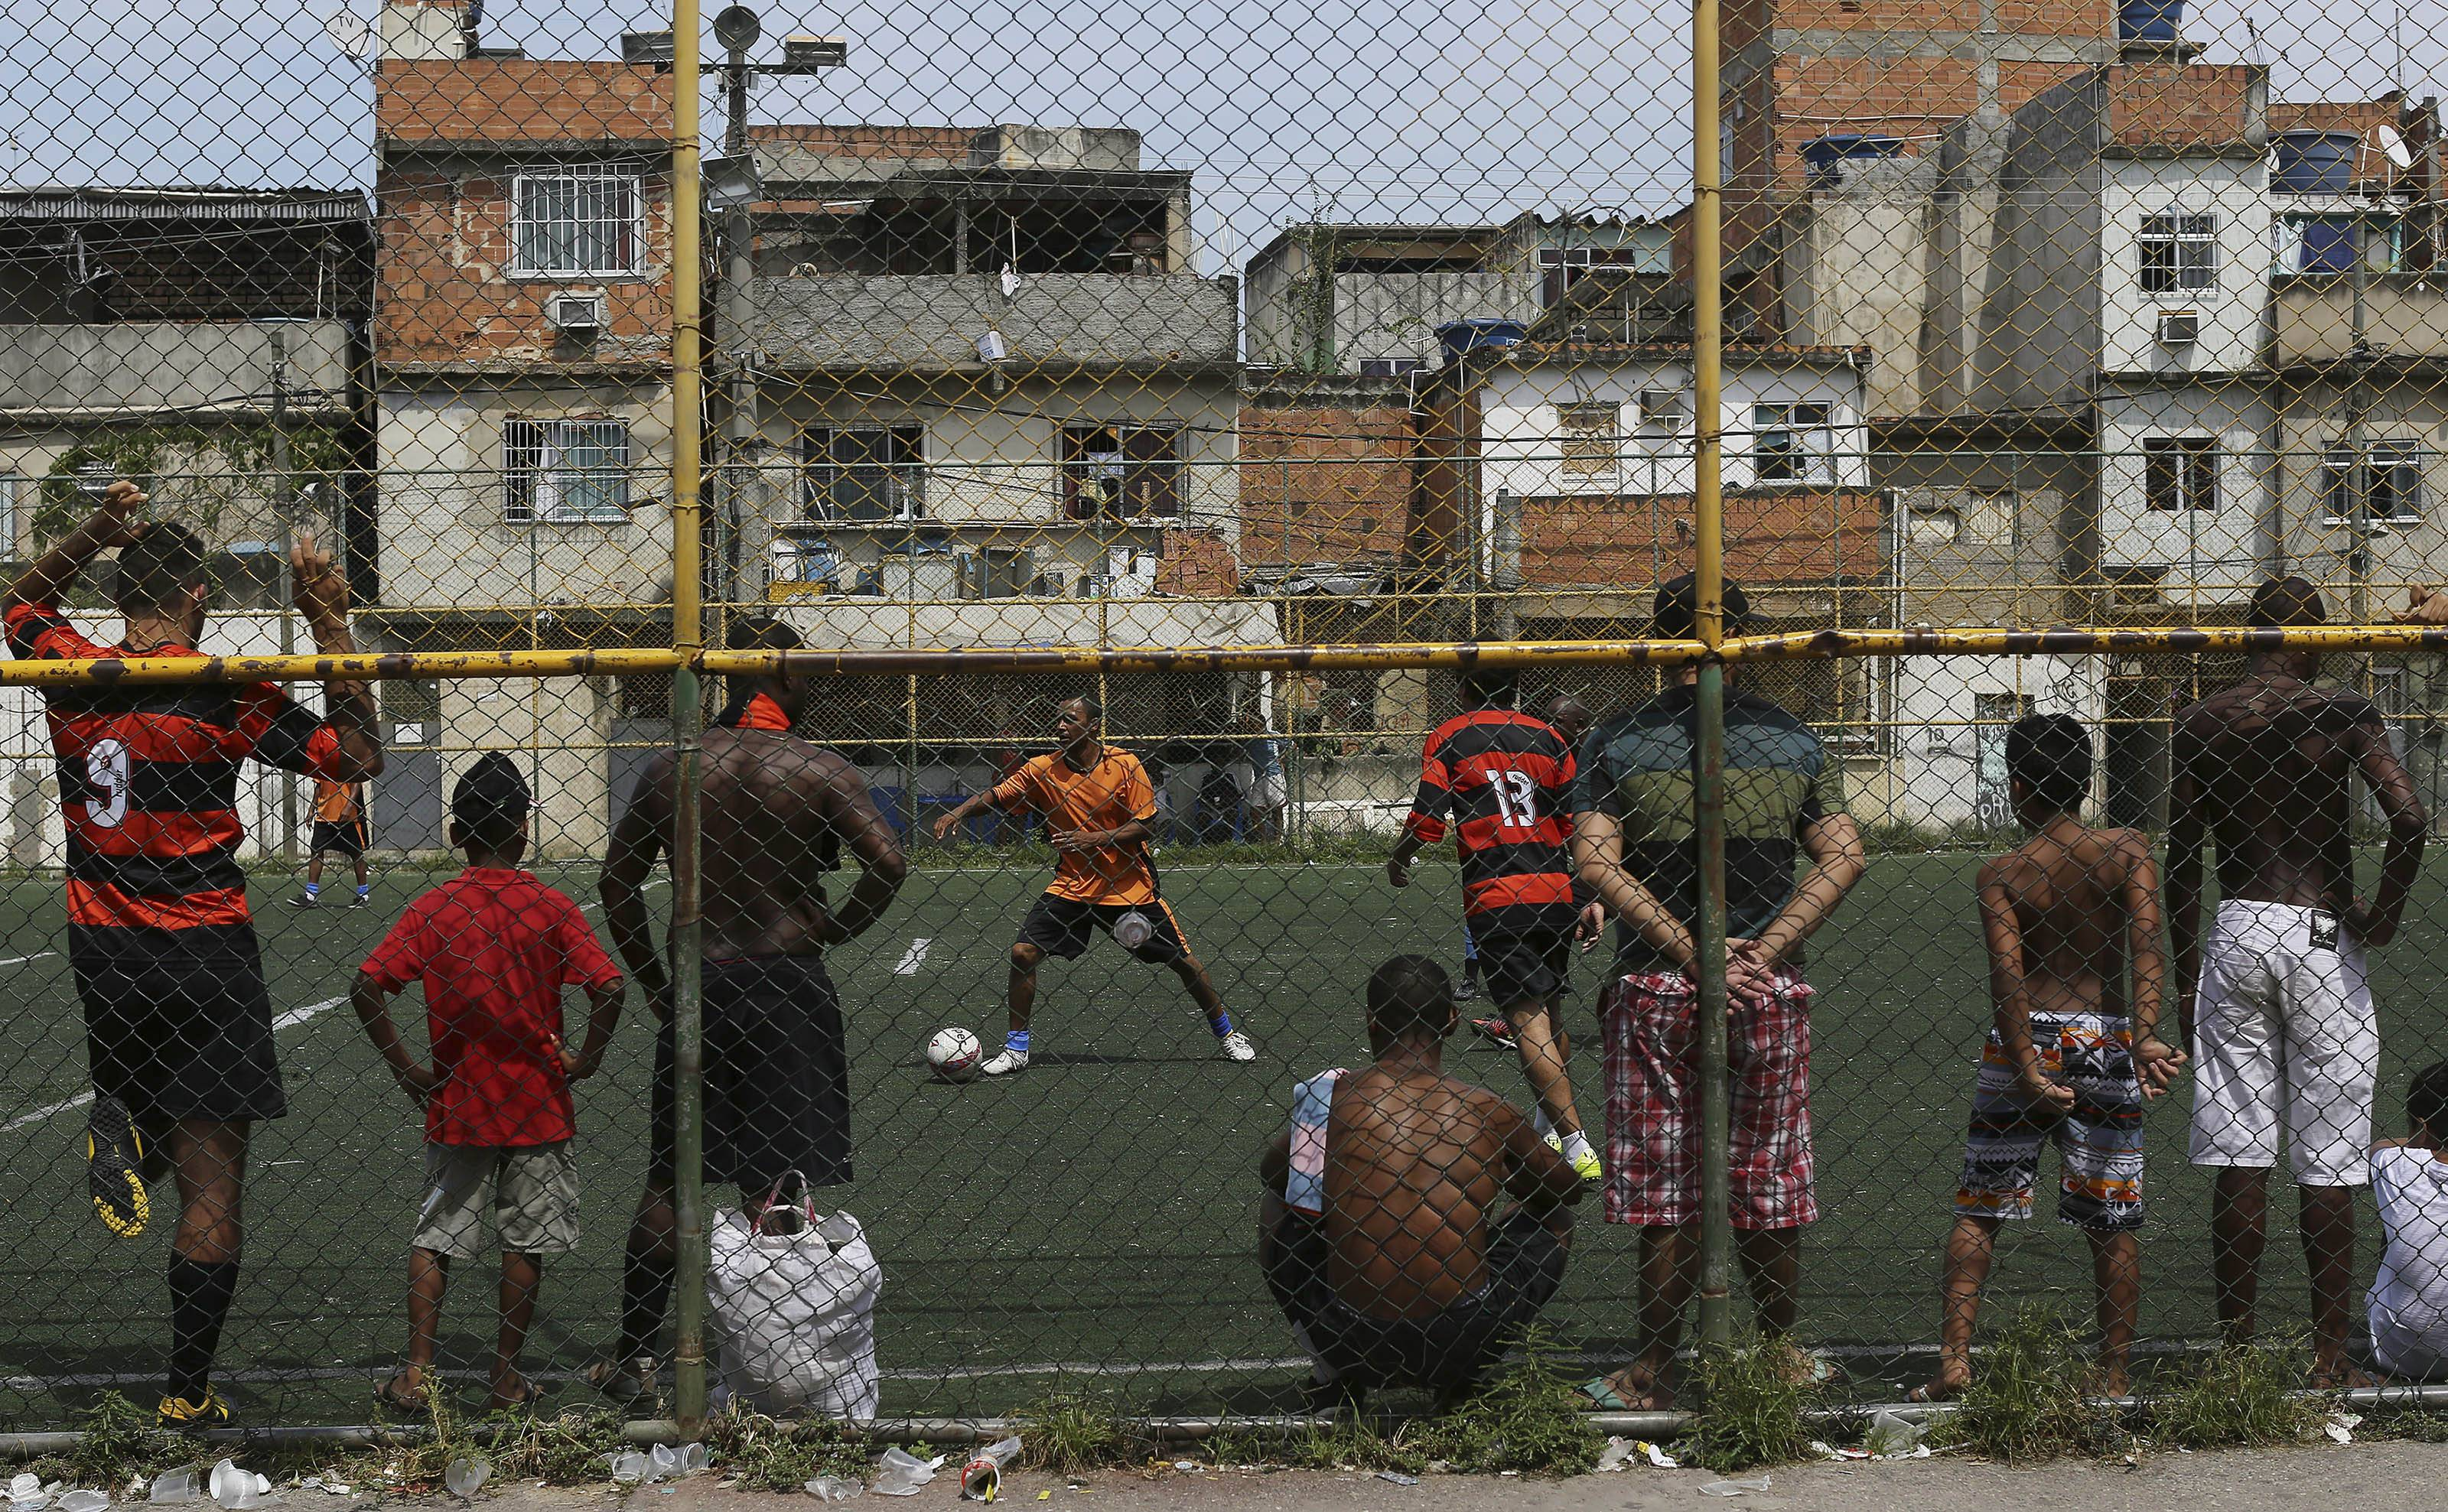 "Residents play soccer at the Nova Holanda, part of the Mare slum complex in Rio de Janeiro, Brazil, Sunday, March 30, 2014. The Mare complex of slums, home to about 130,000 people and located near the international airport, is the latest area targeted for the government's ""pacification"" program, which sees officers move in, push out drug gangs and set up permanent police posts."